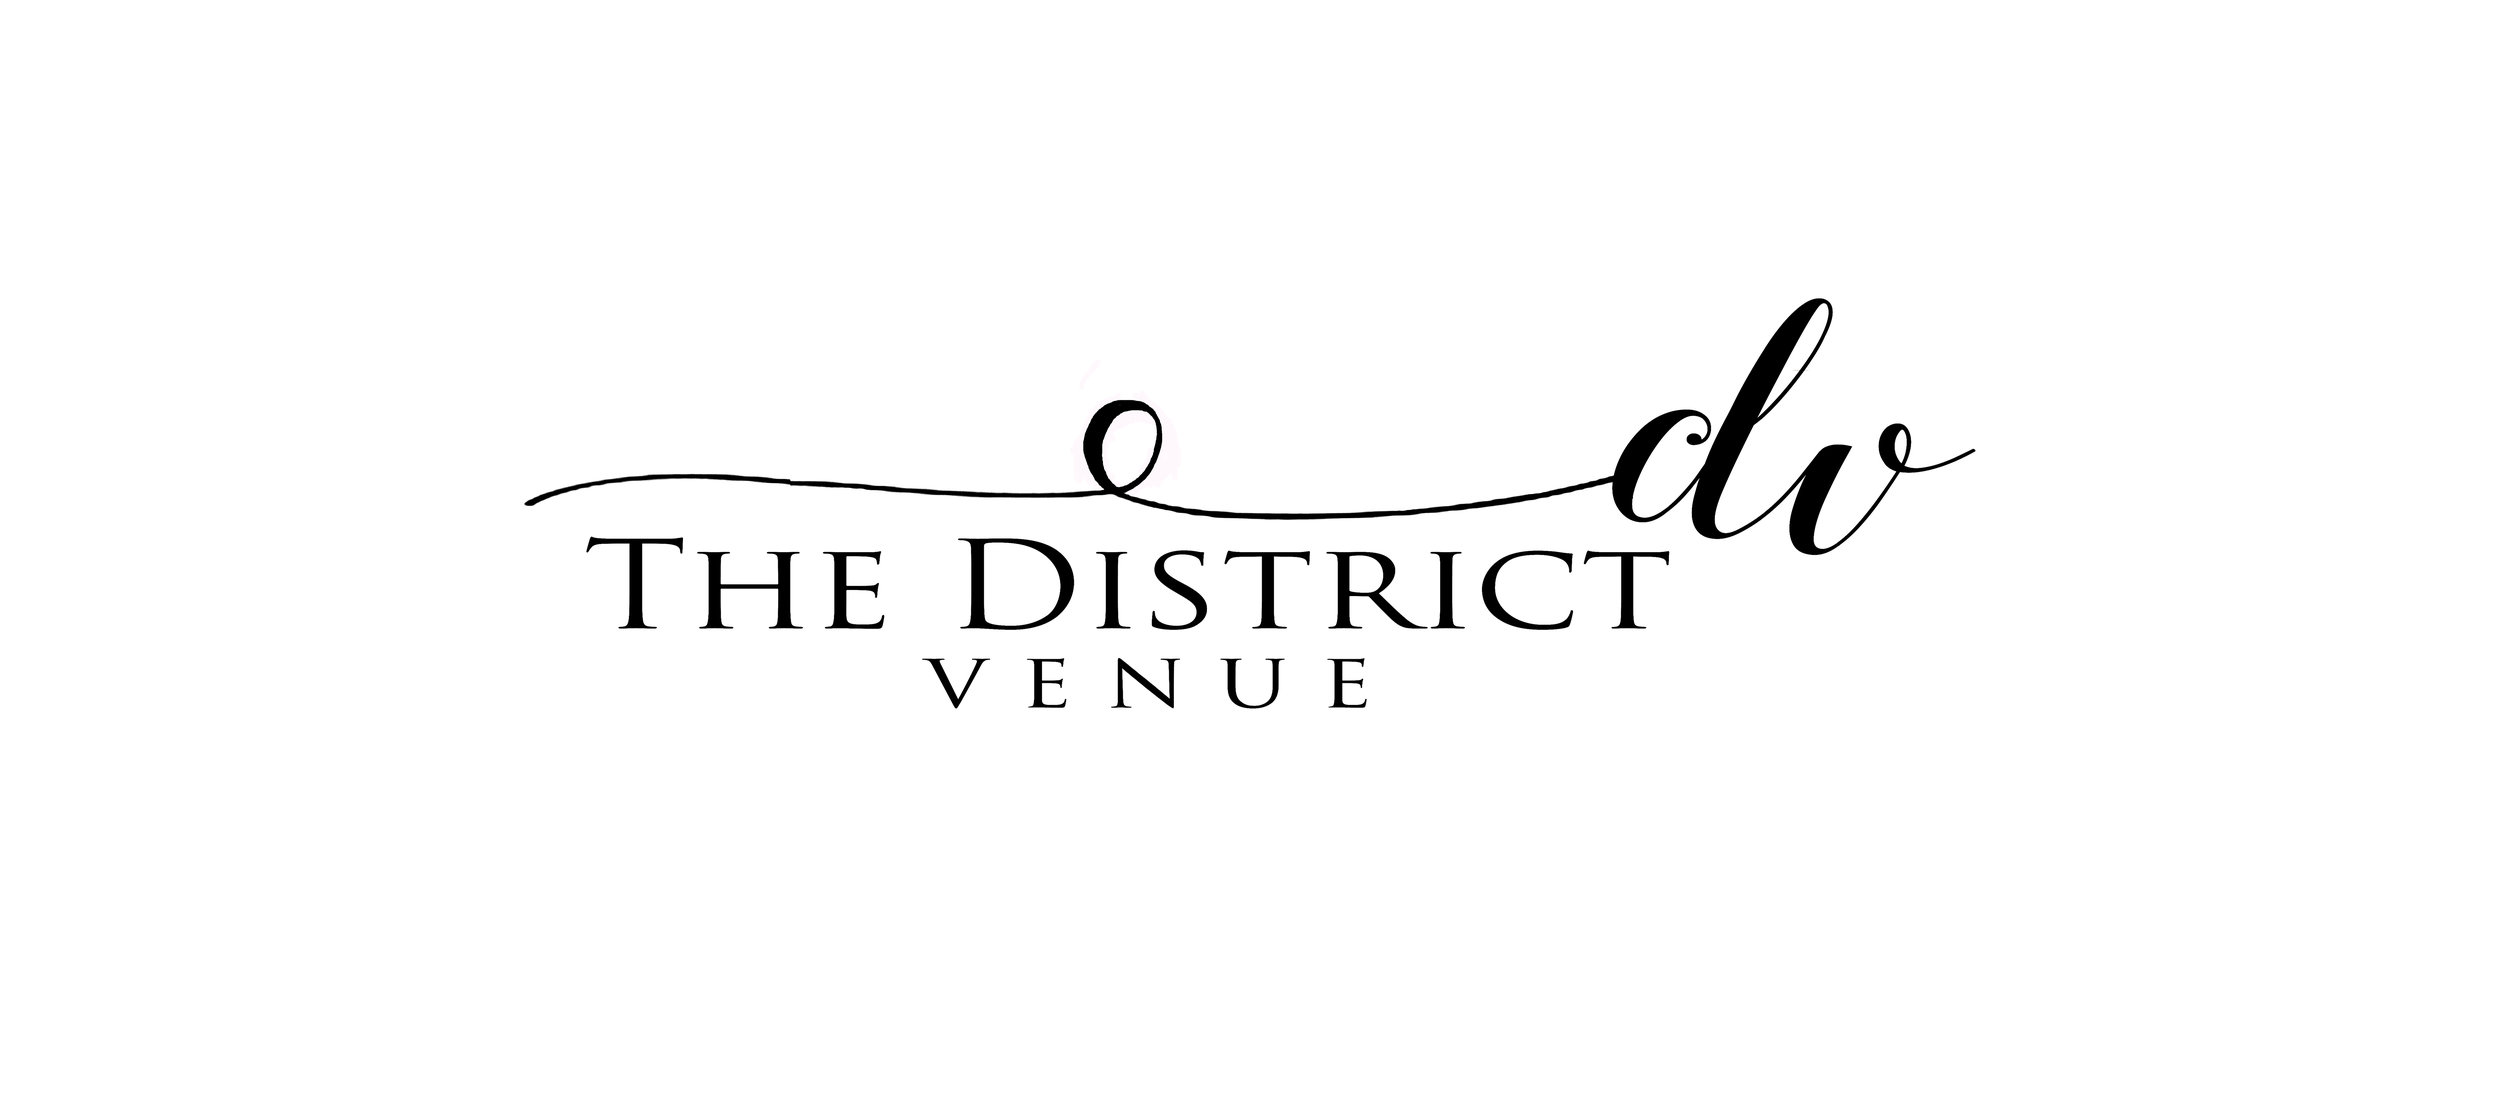 The District Venue.jpg